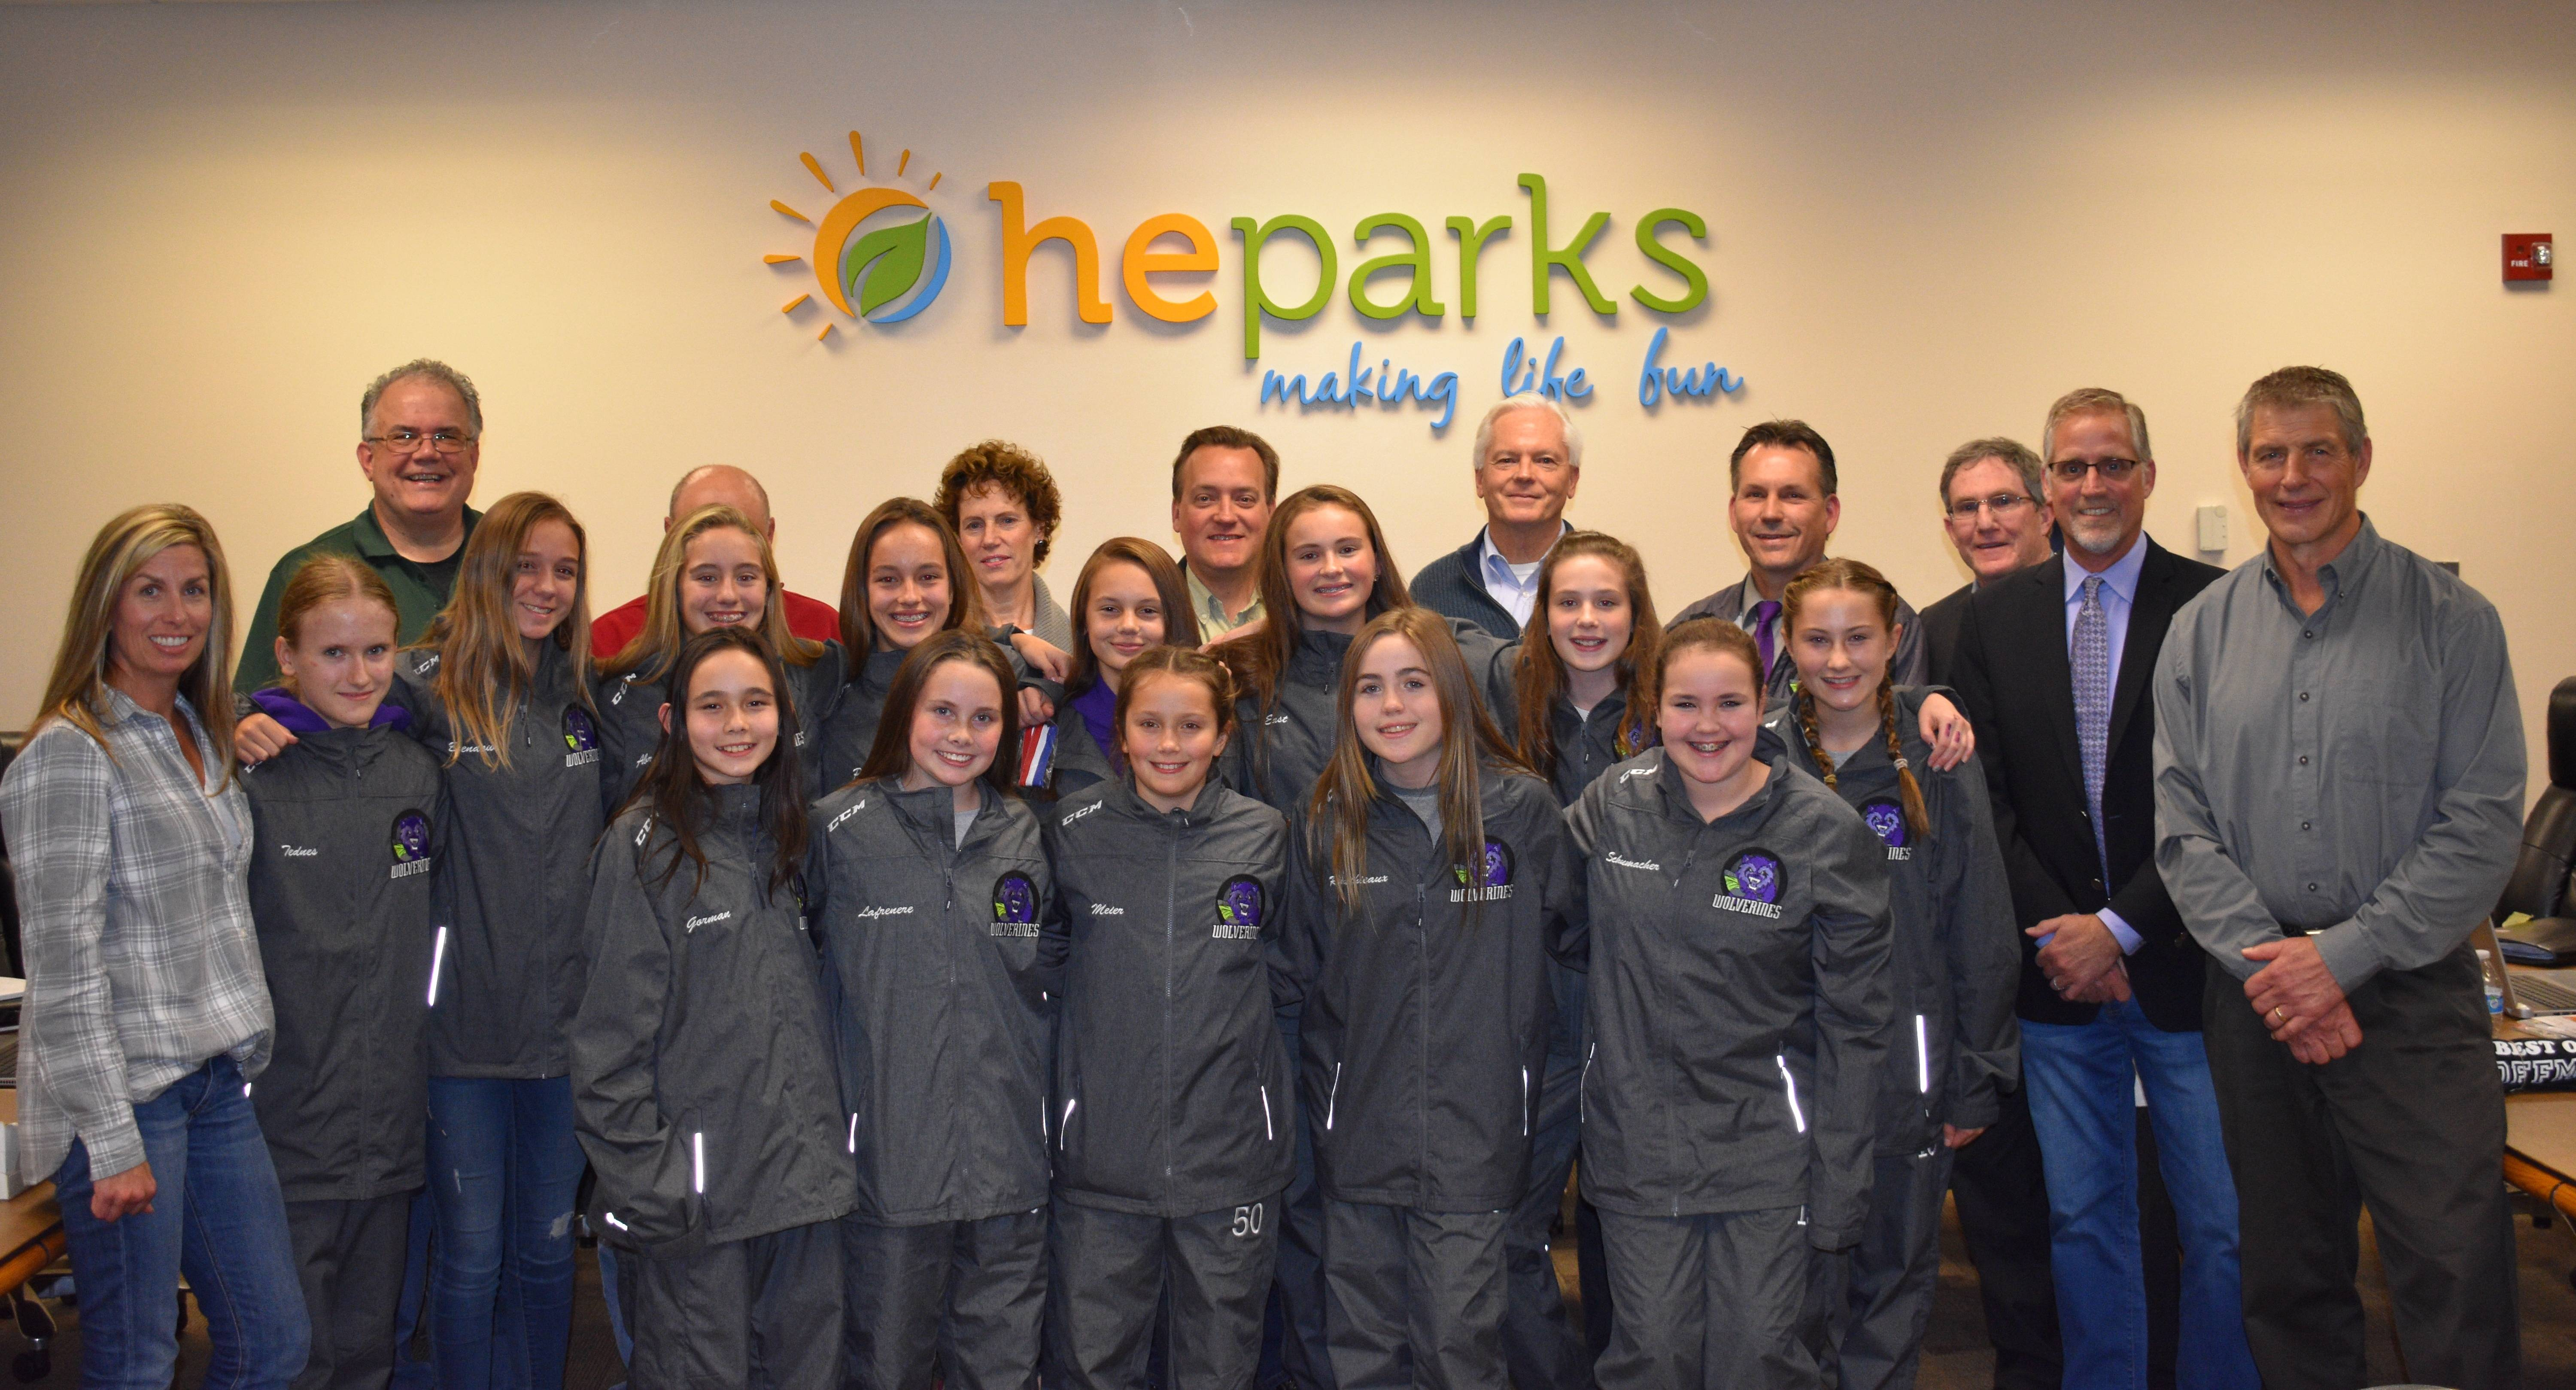 The Wolverines Girls Hockey team was named October's Best of Hoffman by the HE Parks Board of Commissioners because of the tremendous success, ranking number one in Illinois this month, and in the nation over the past months.smanisco@heparks.org